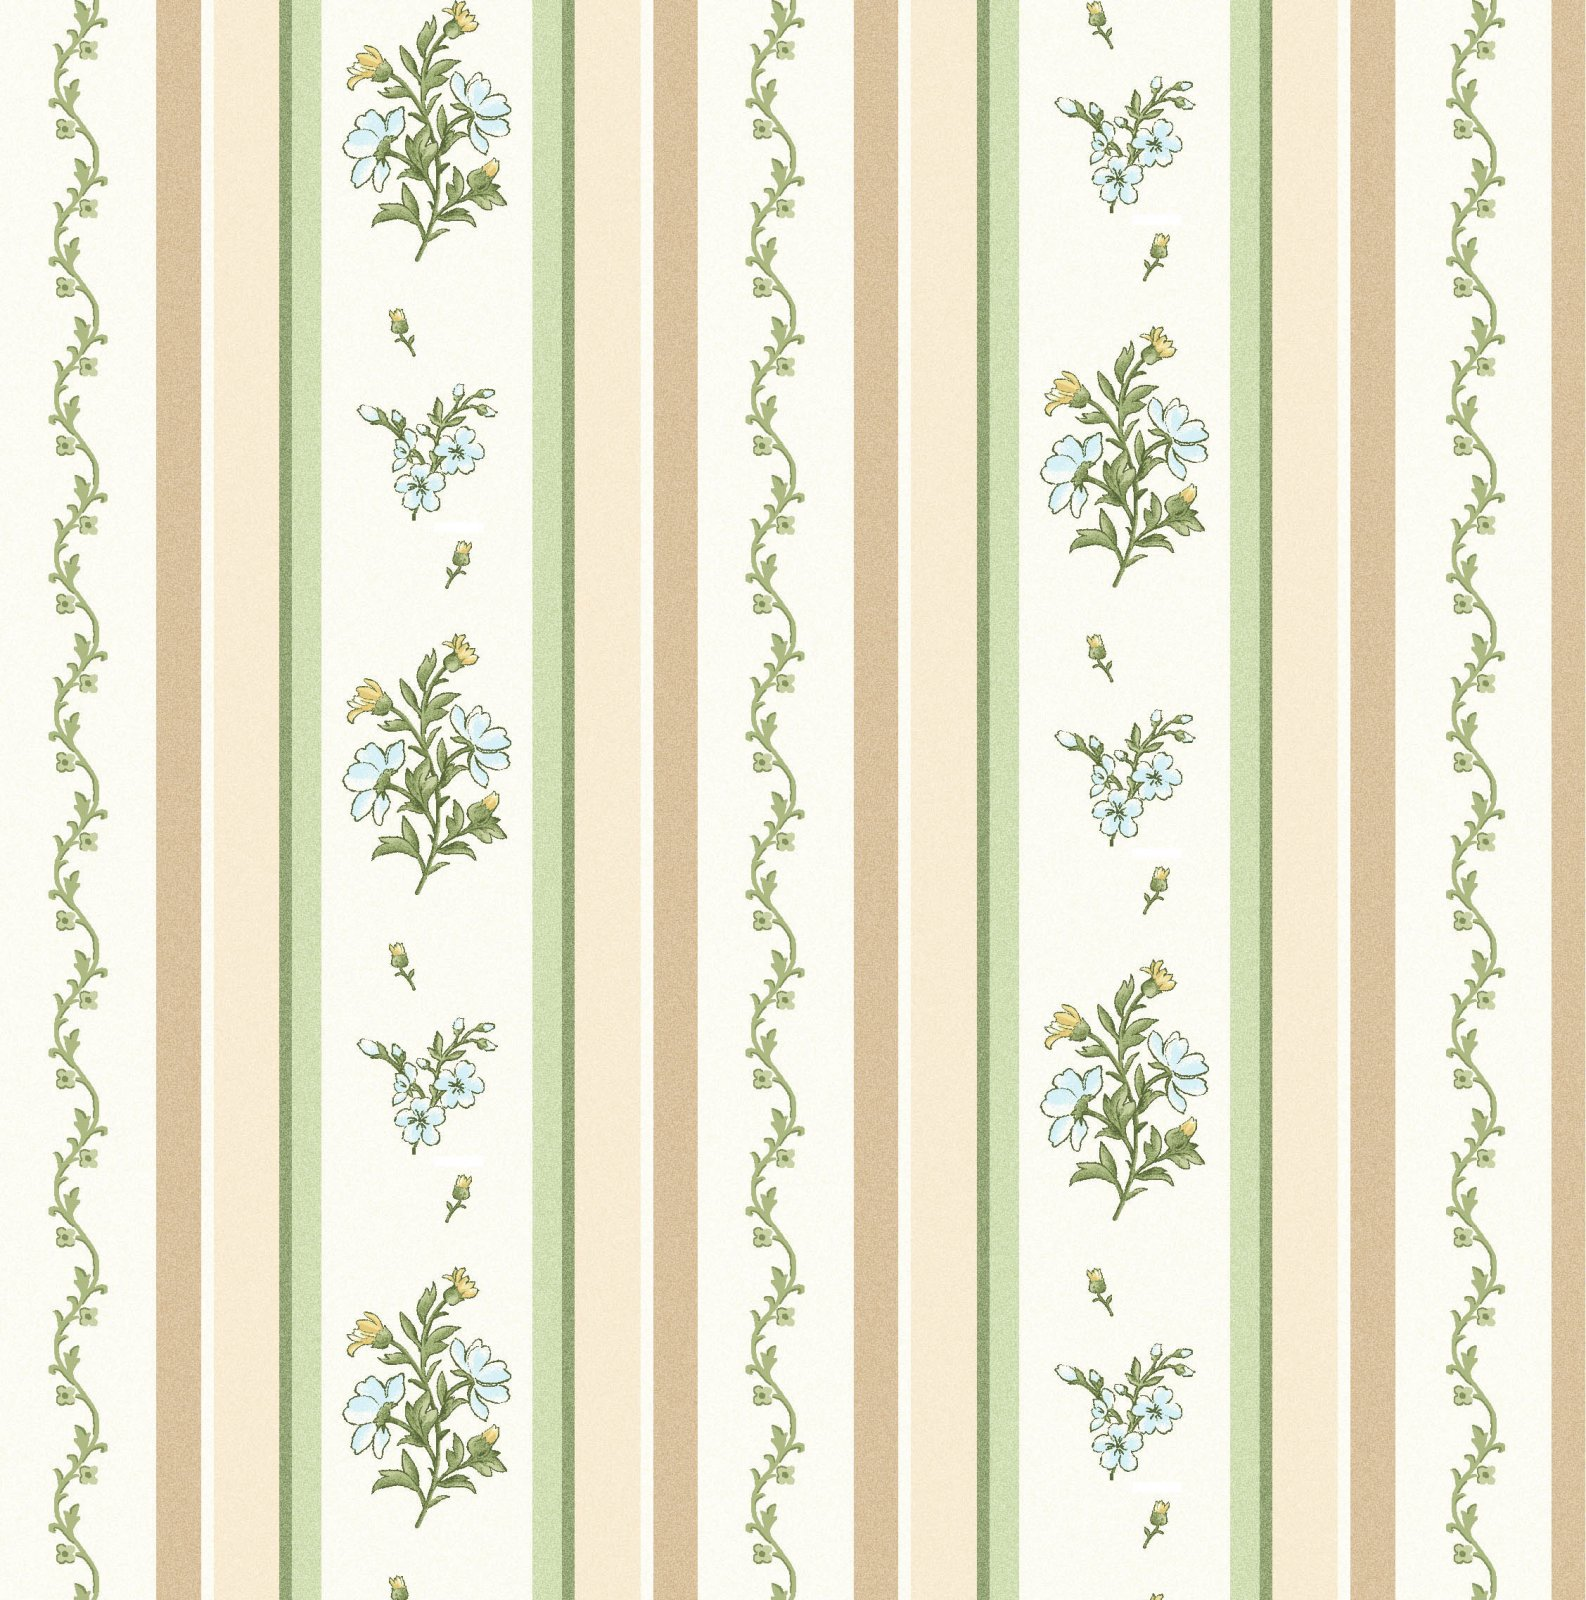 Gentle Breeze MAS 8515-E by Jan Douglas for Maywood Studio